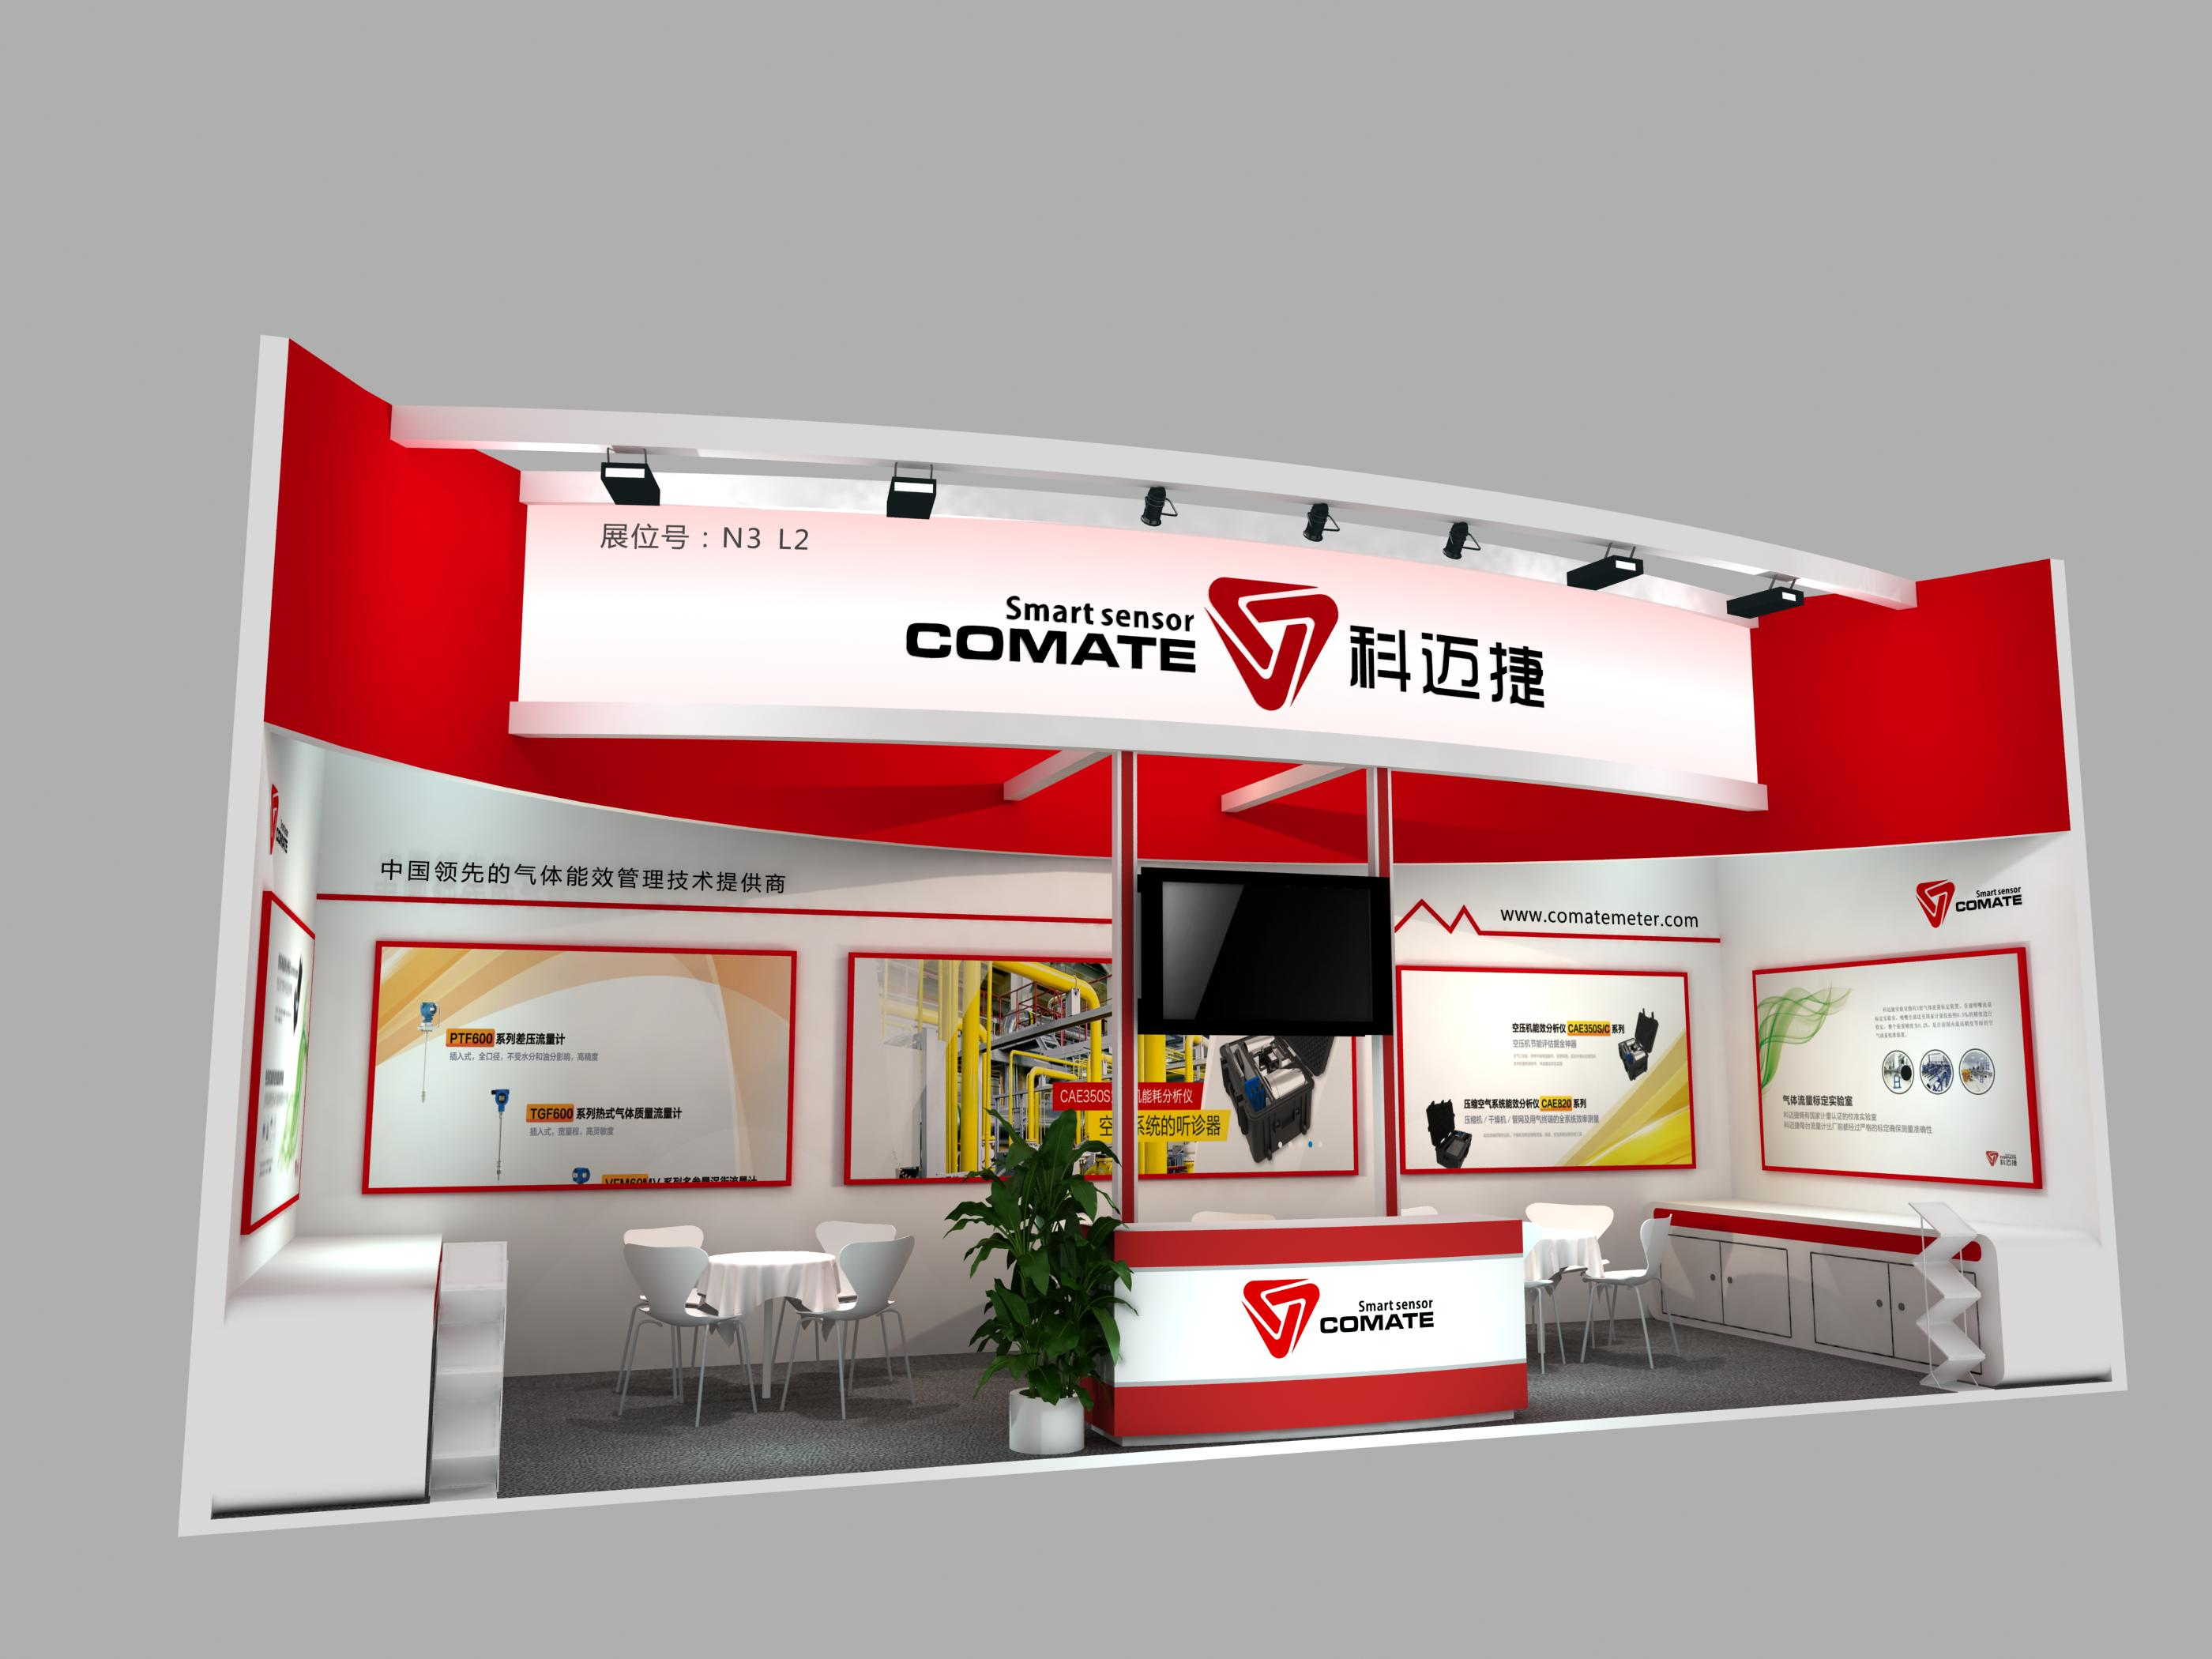 Comate Intellient Sensor exihition in ComVac ASIA 2017